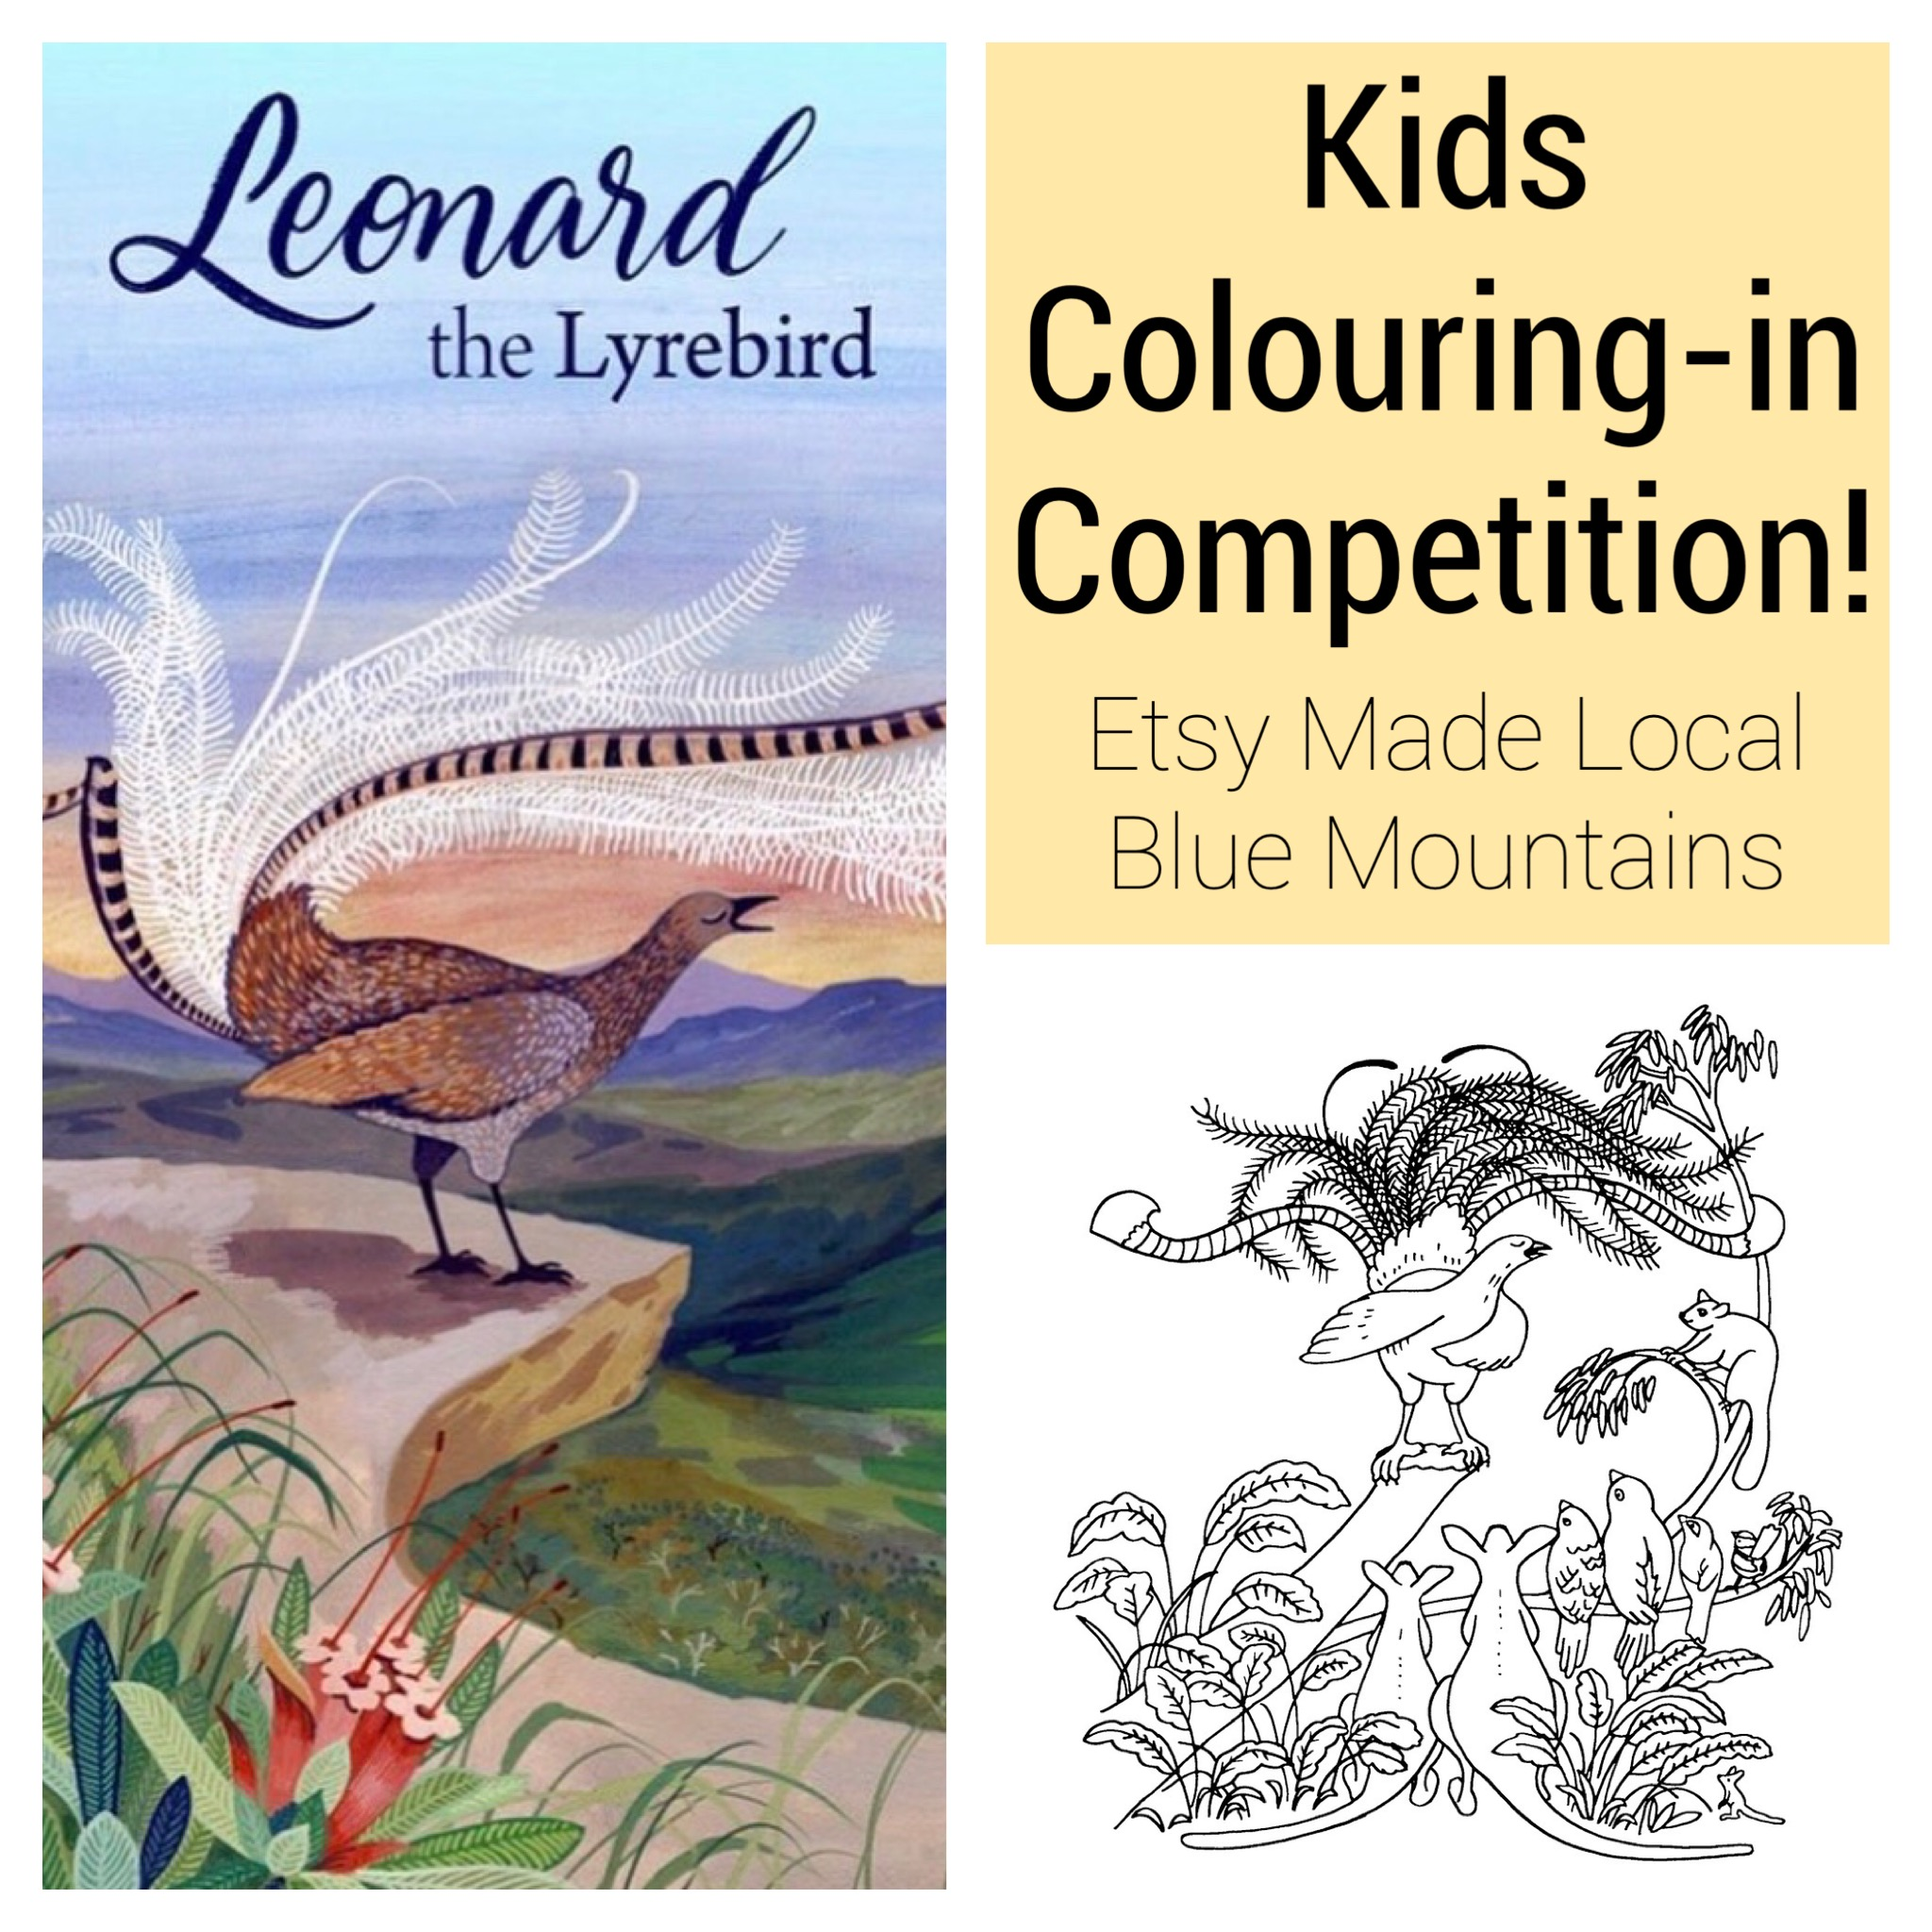 We are running a wonderful Kids Colouring In Competition at this years market!